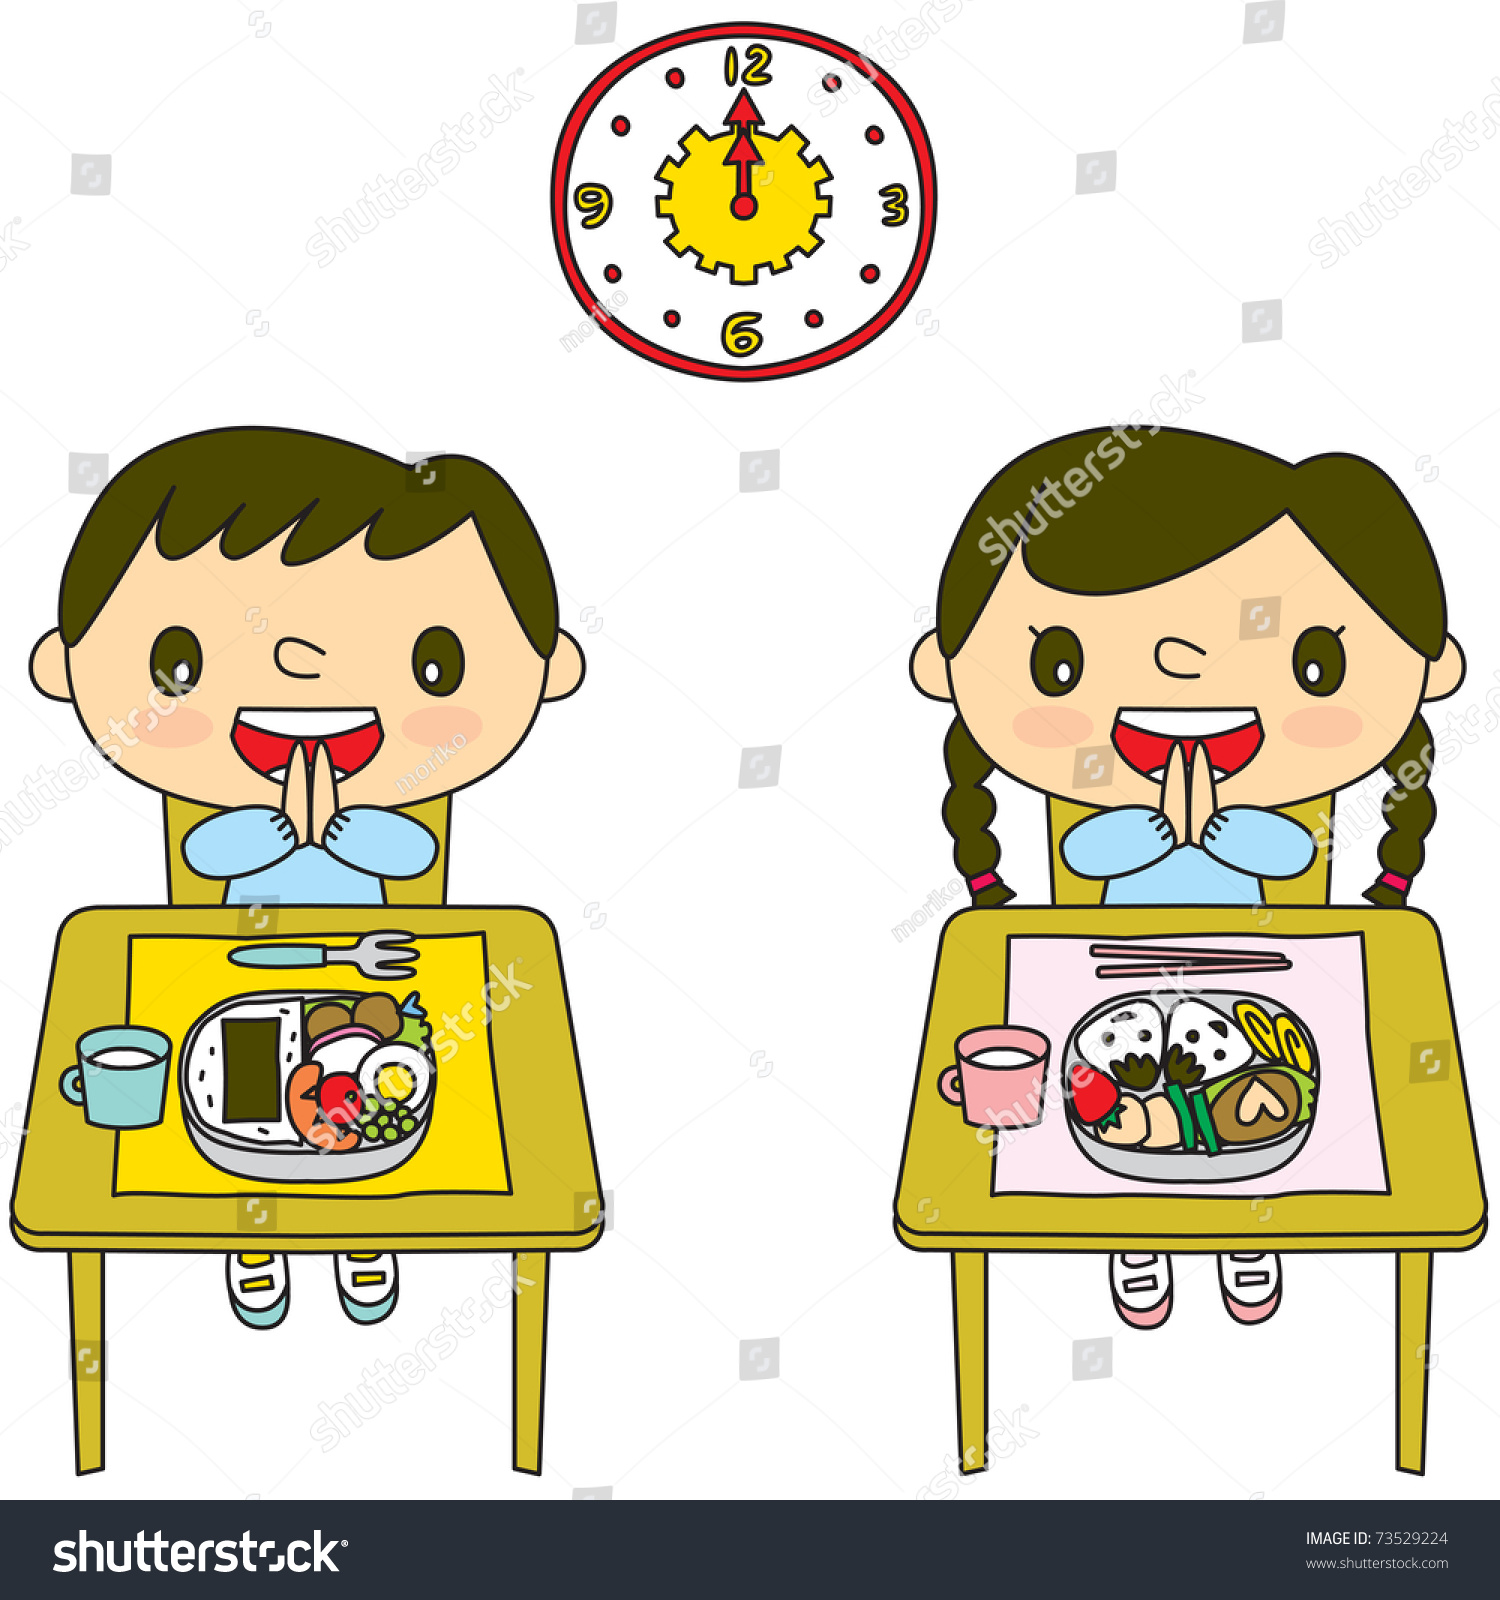 List Of Synonyms And Antonyms Of The Word Lunch Time Cartoon